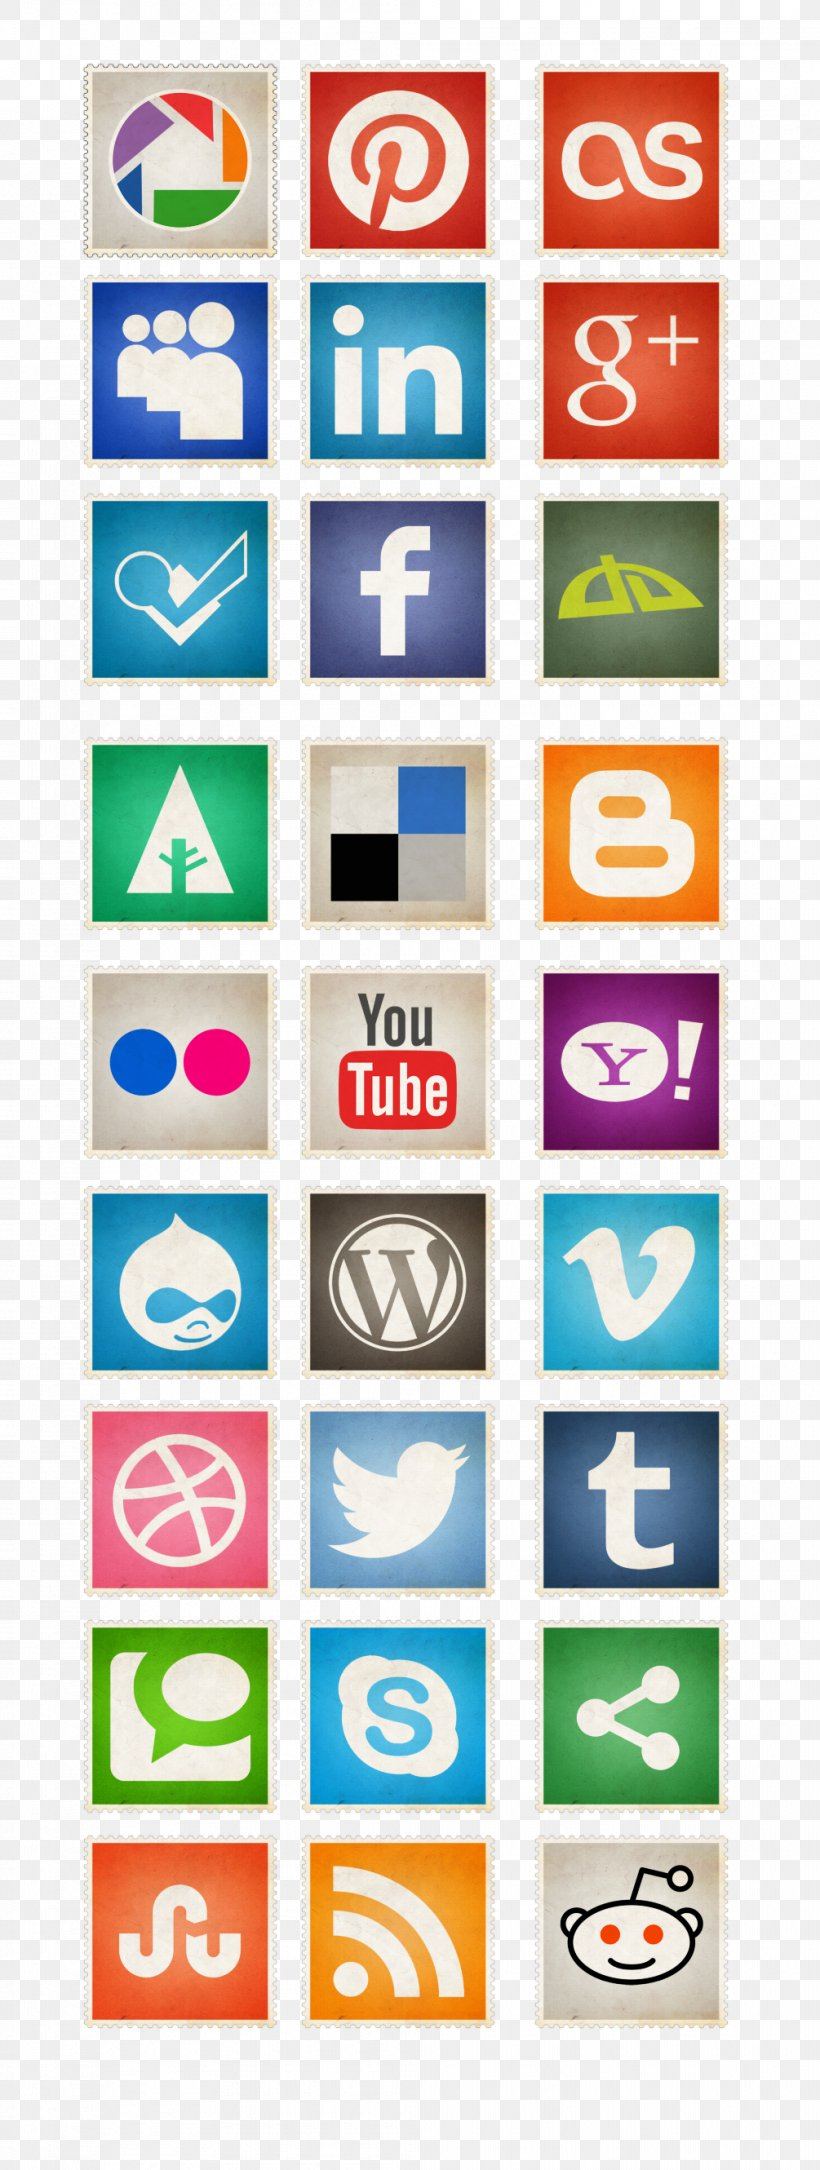 Icon Design Stock Website Icon, PNG, 1005x2660px, Stock, Area, Brand, Button, Display Advertising Download Free